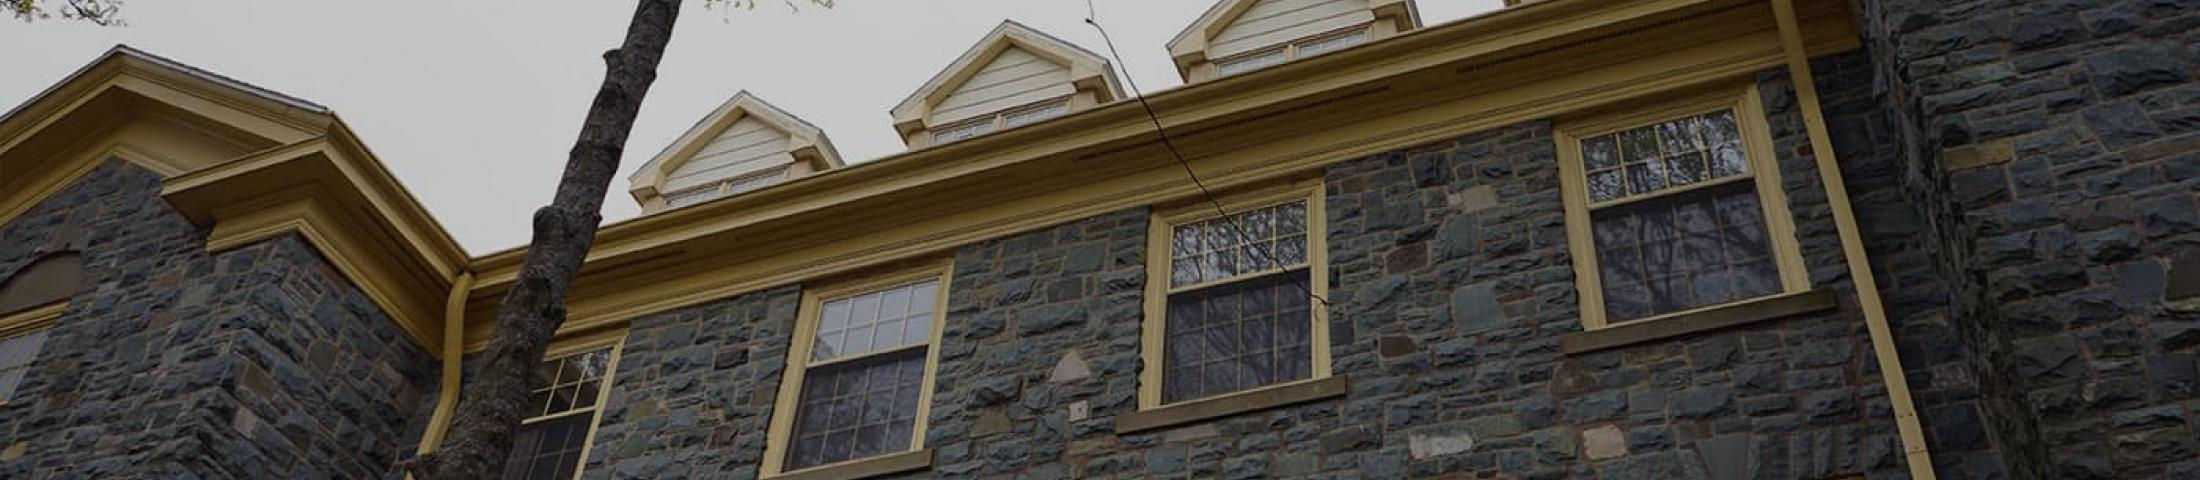 commercial contracting and building restoration in Halifax, NS